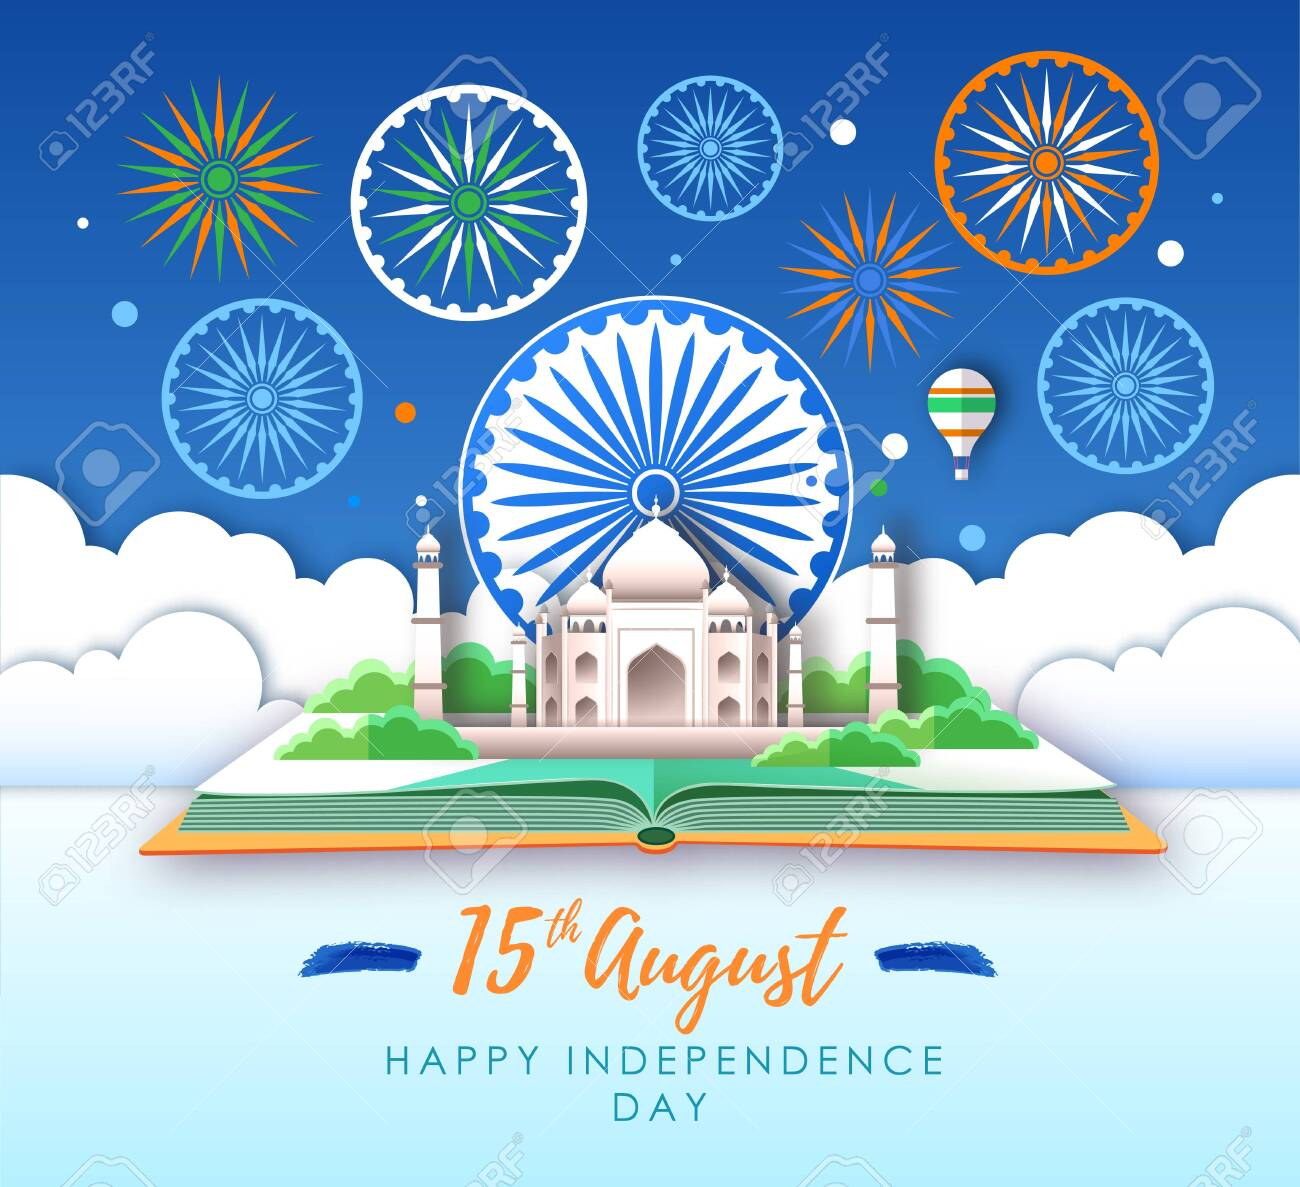 Independence day of India. Taj Mahal and holiday firework. Cut out paper art style design - 123083775